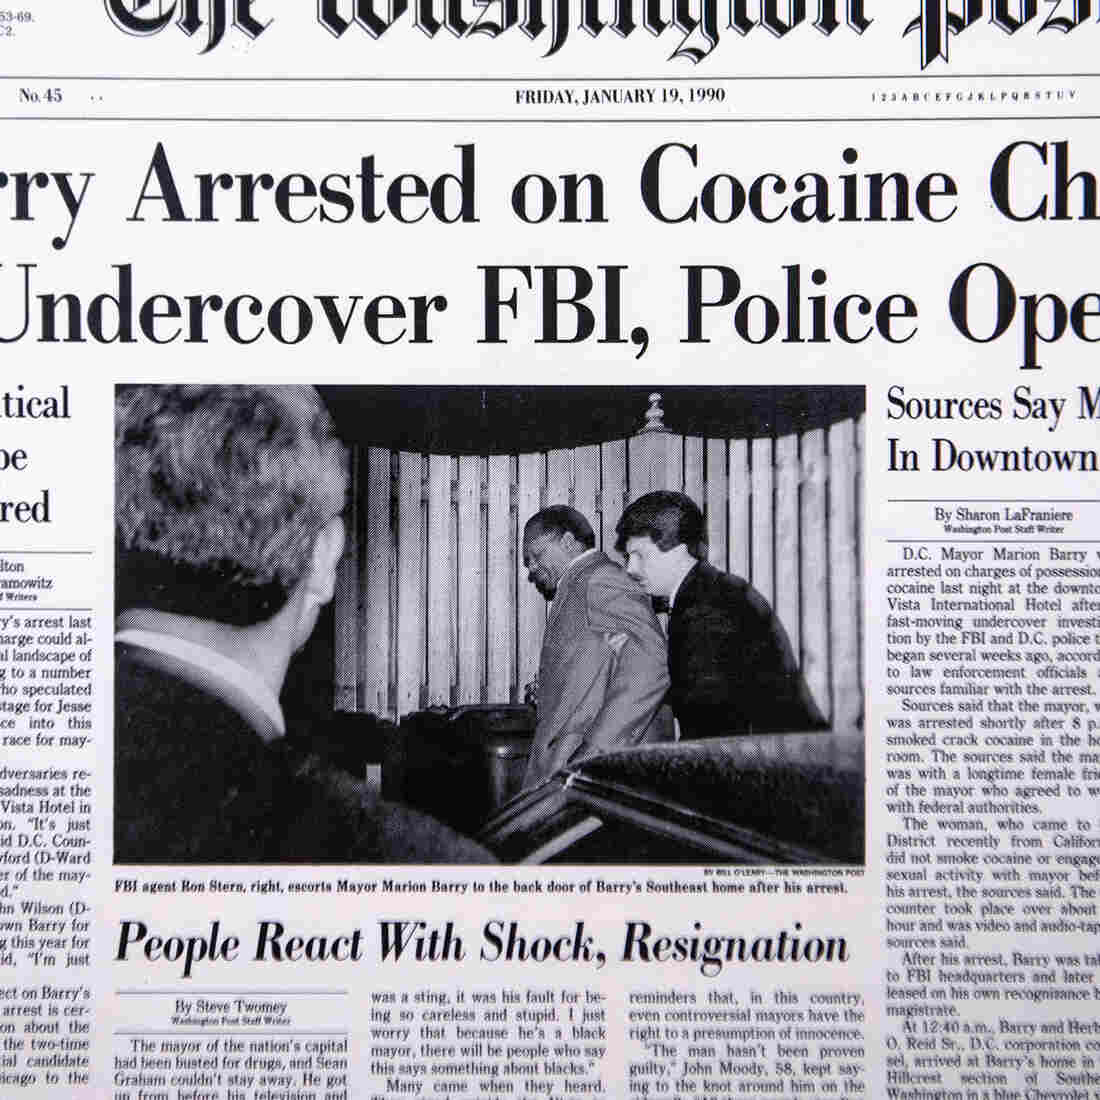 Bill O'Leary's photo of Marion Barry getting escorted by an FBI agent made the front page of the Jan. 19, 1990, issue of The Washington Post.